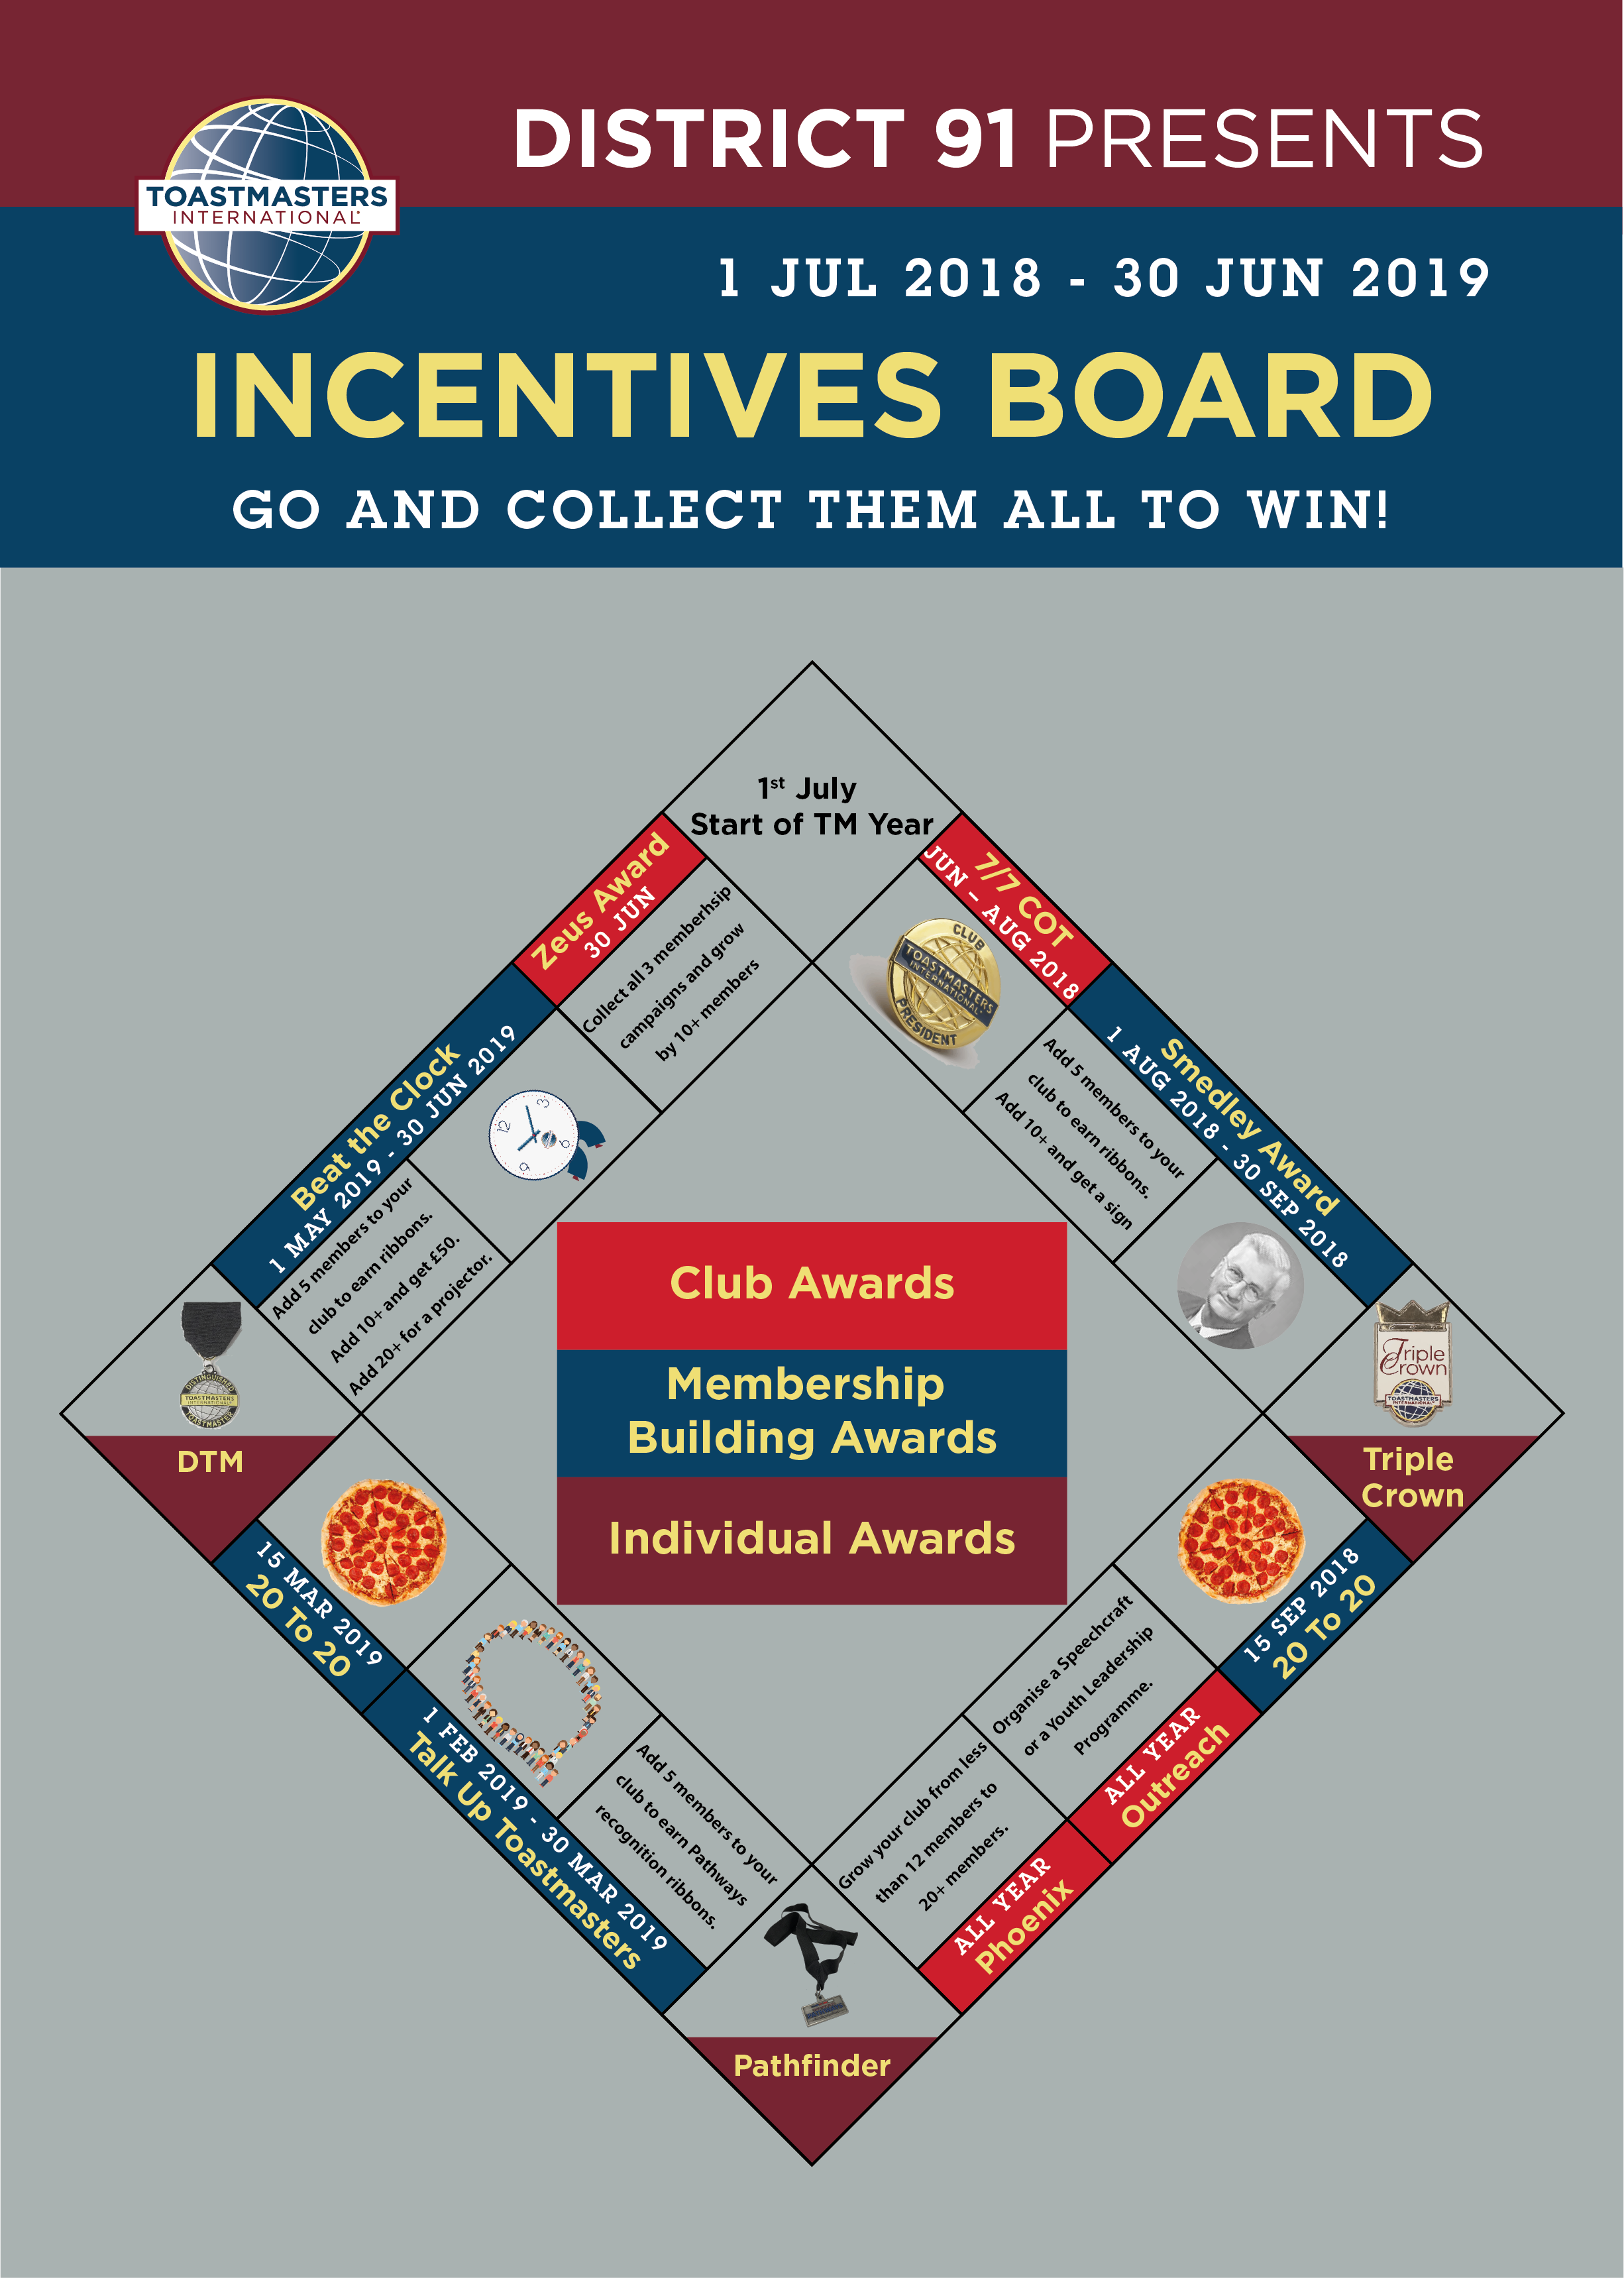 Incentives board created by Florian Bay